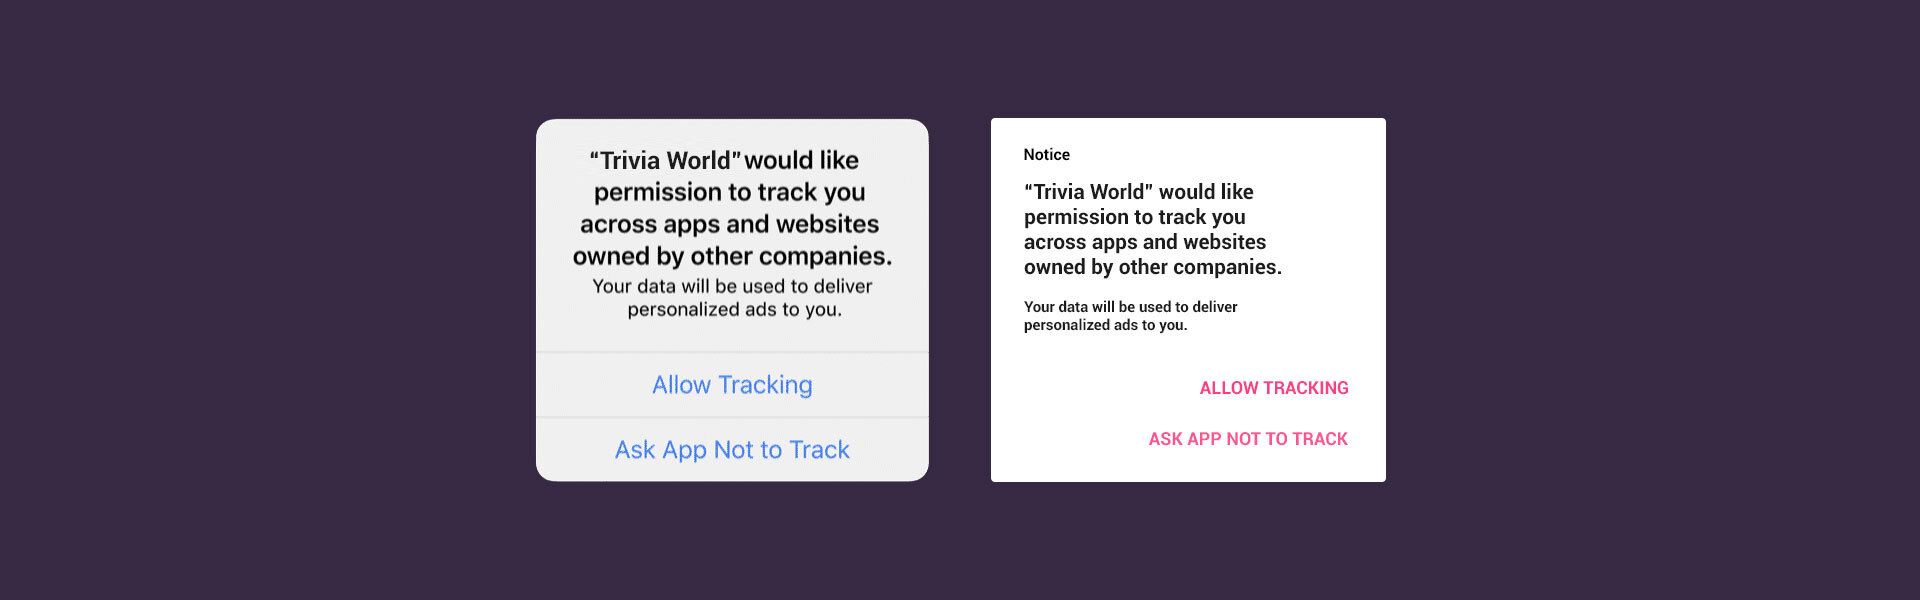 Nearly 70% of iOS and Android users will deny tracking permissions if they are requested in-app to opt-in